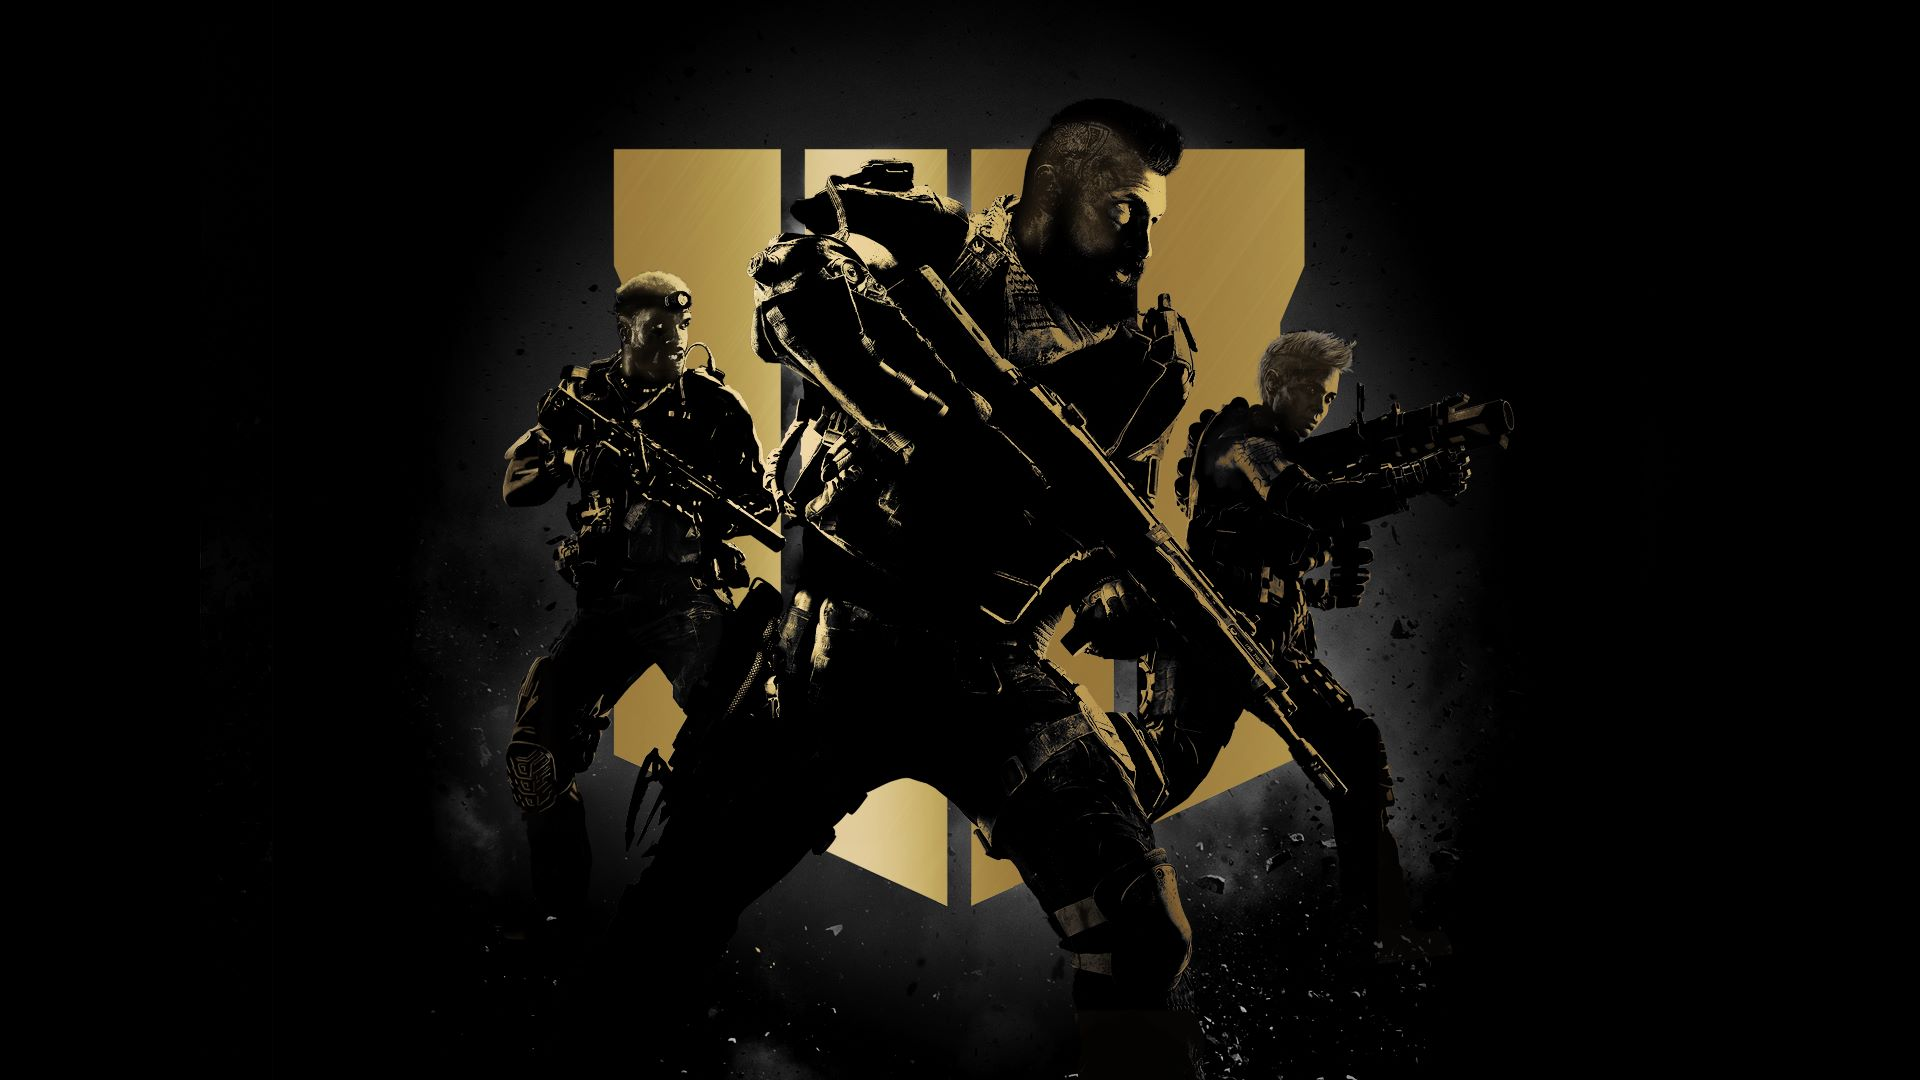 call of duty black ops 4 deluxe enhanced edition xbox one